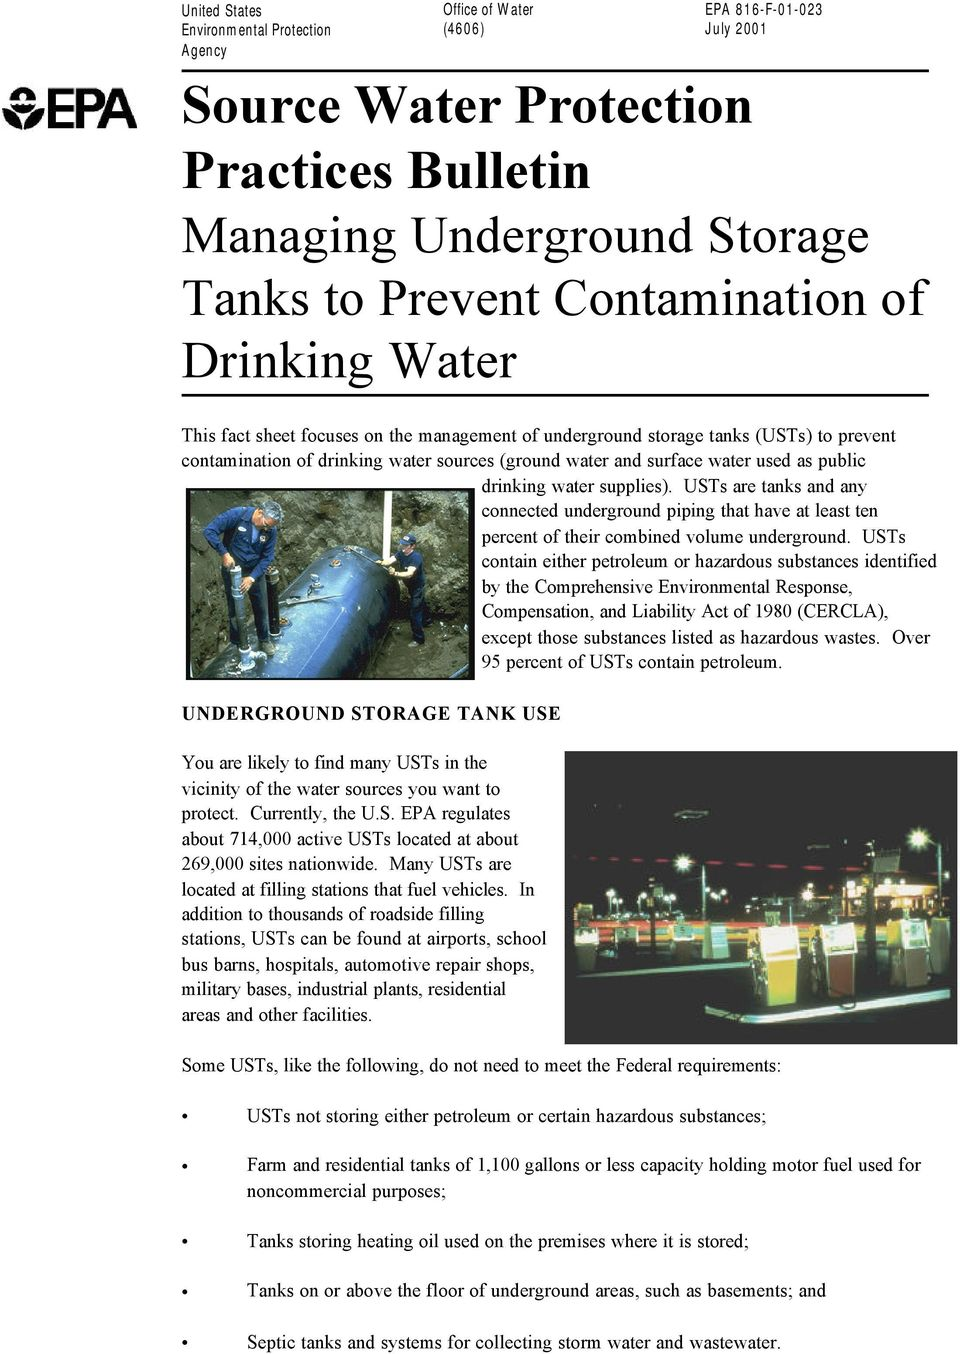 drinking water supplies). USTs are tanks and any connected underground piping that have at least ten percent of their combined volume underground.